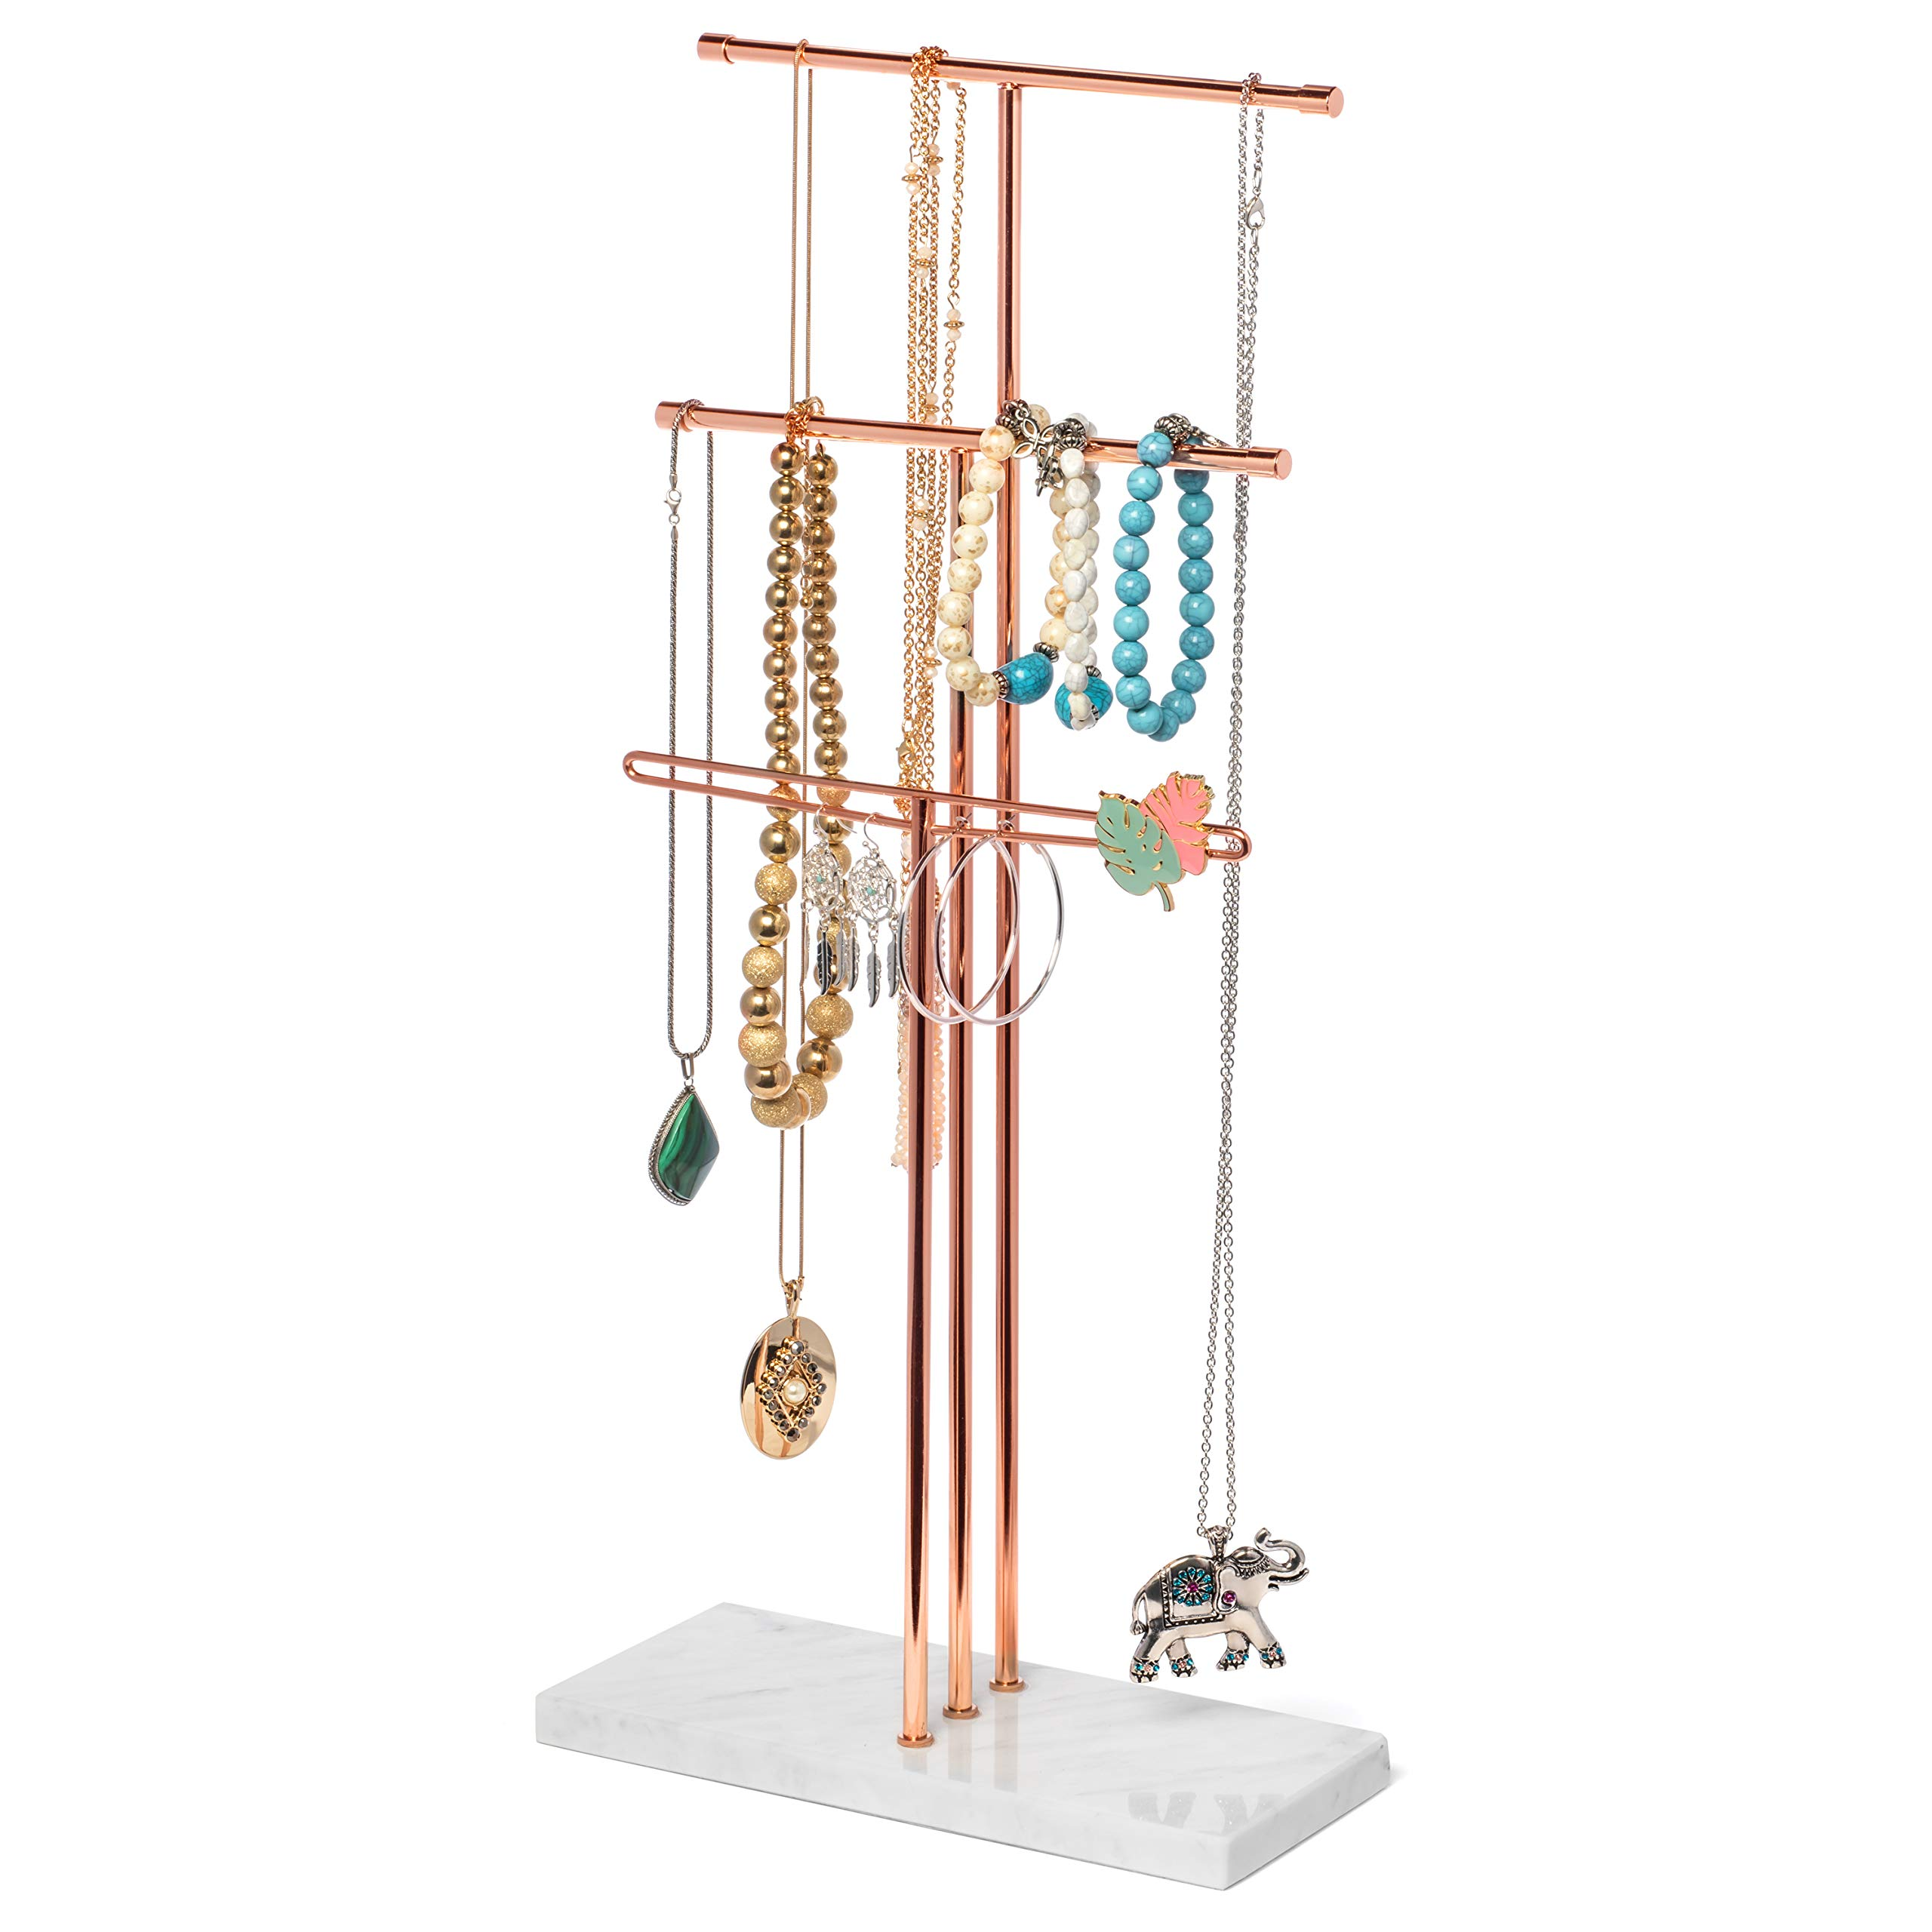 Delice N Delight Jewelry Stand Organizer - Perfect for Long Necklaces/Earrings/Bracelet Storage - Accessories Holder and Jewel Storage